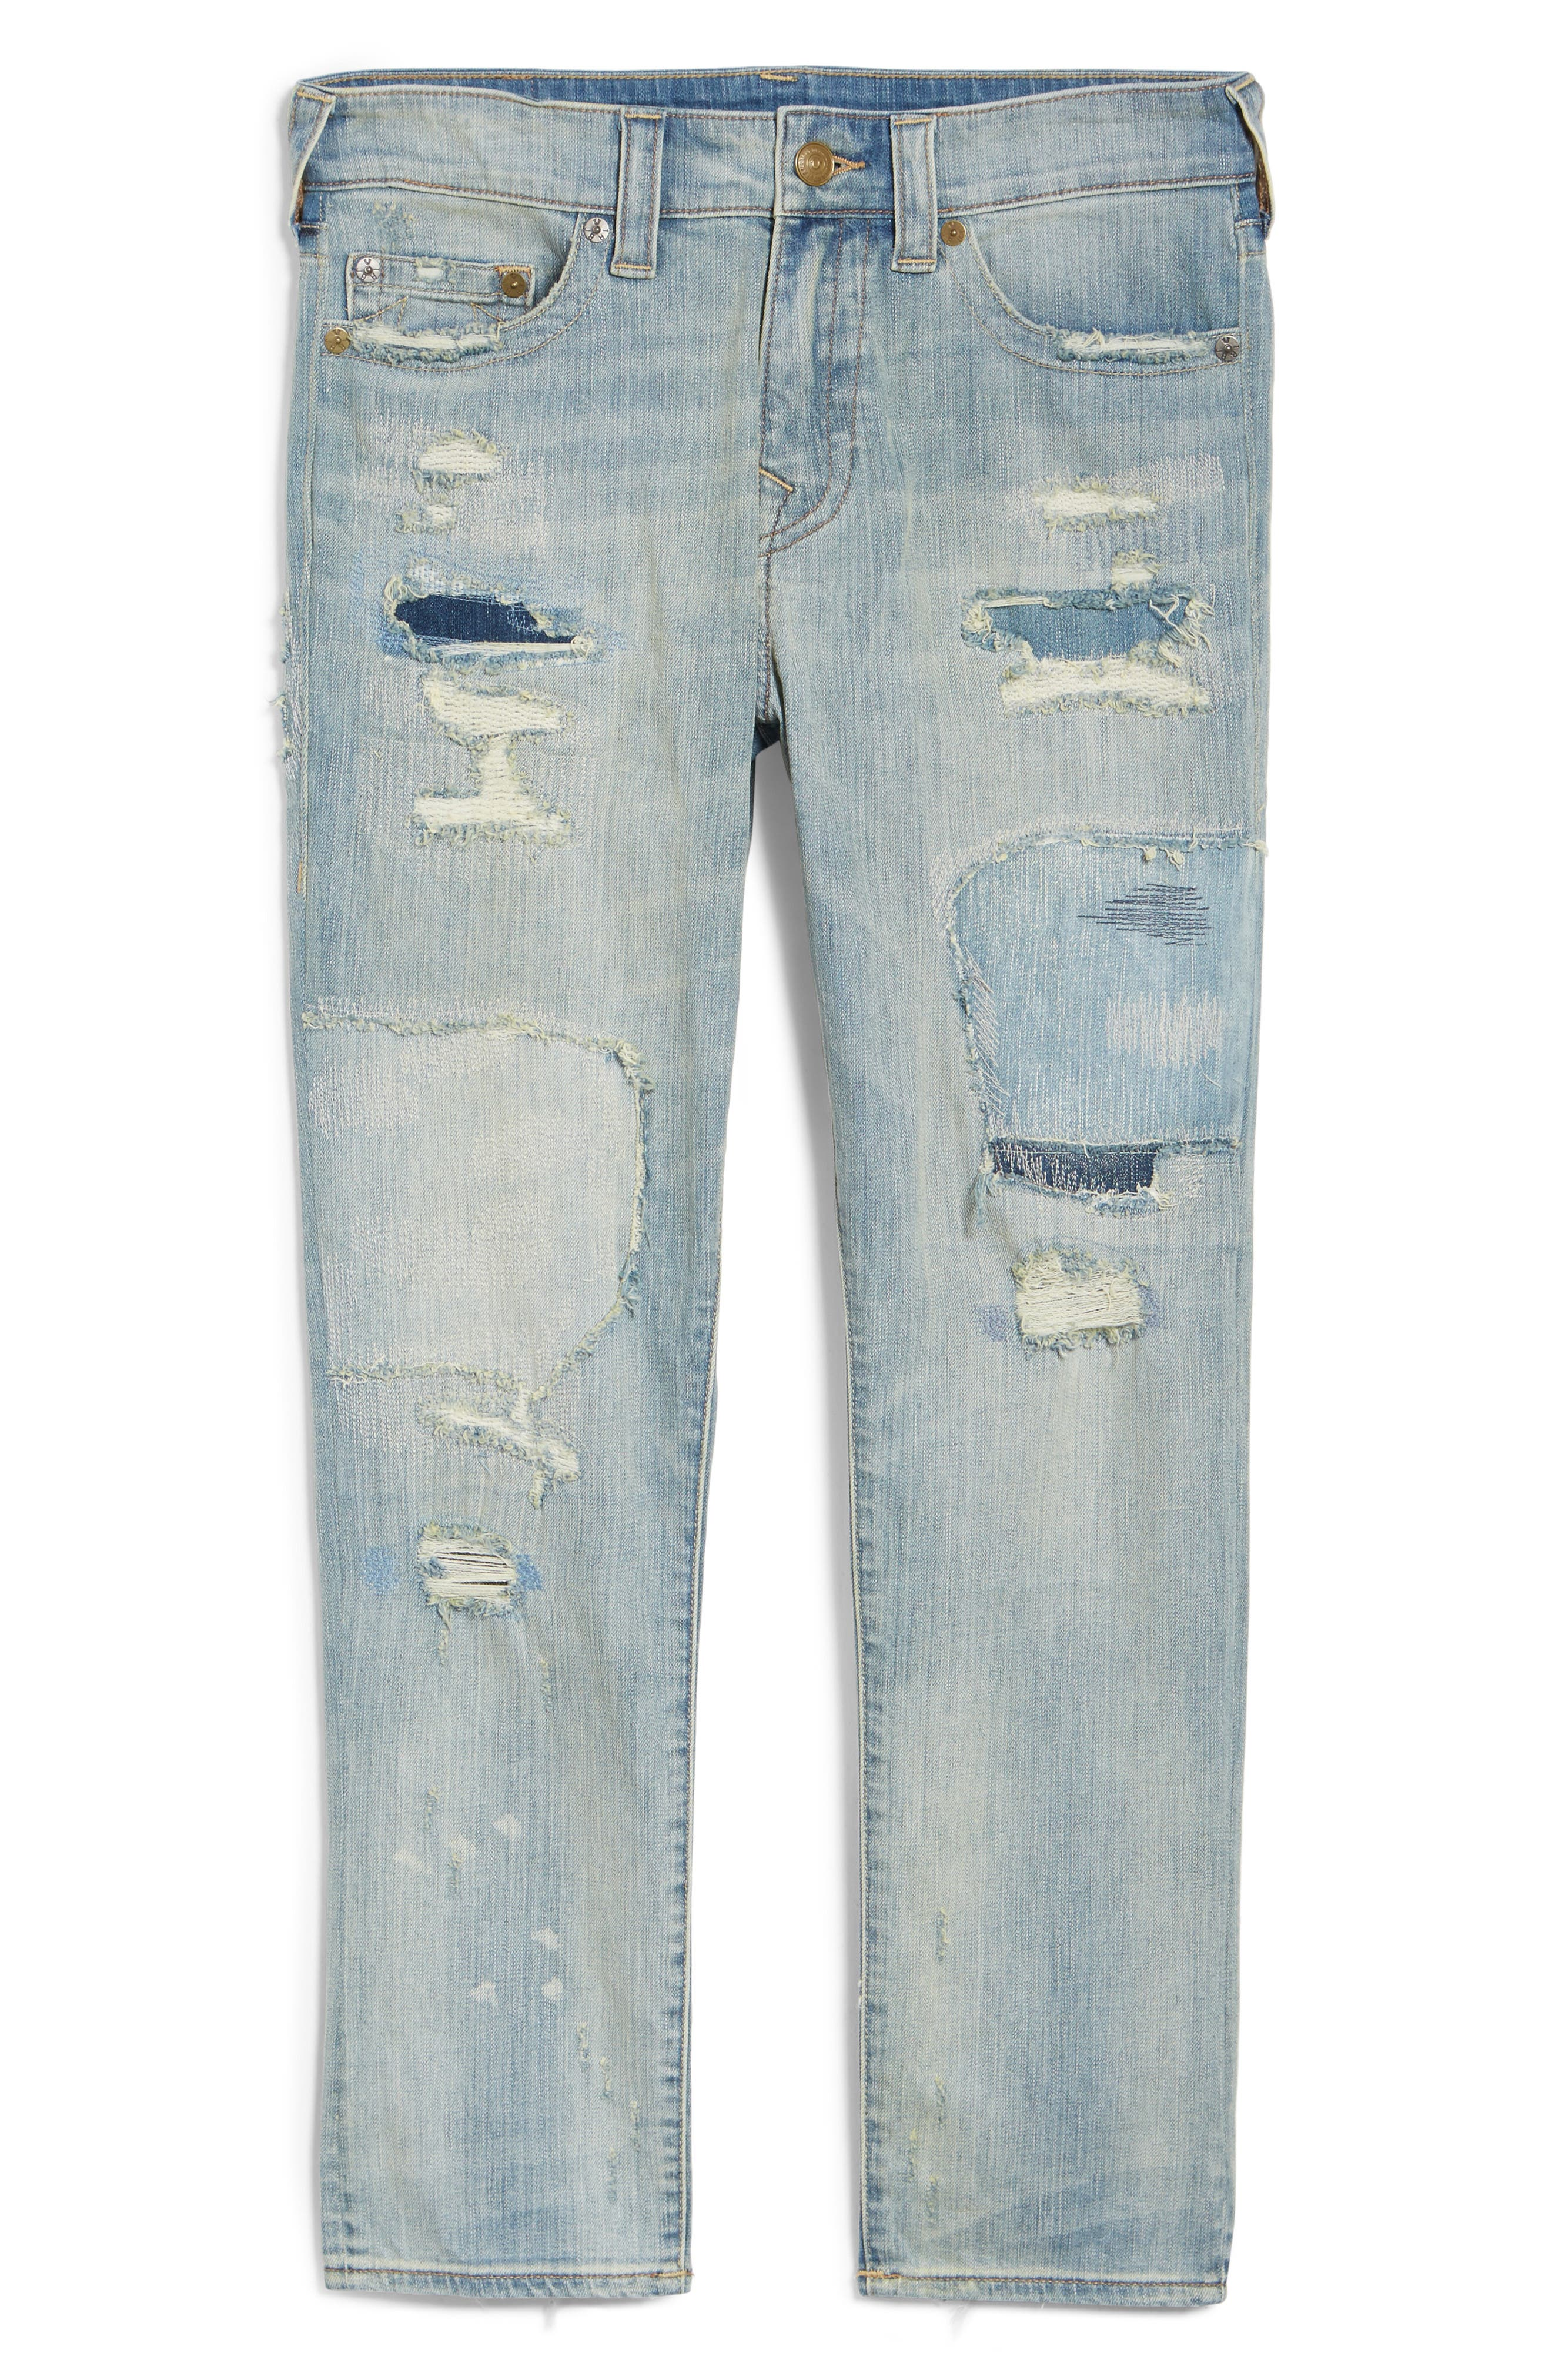 Mick Skinny Fit Jeans,                             Alternate thumbnail 6, color,                             Indigo Immortal